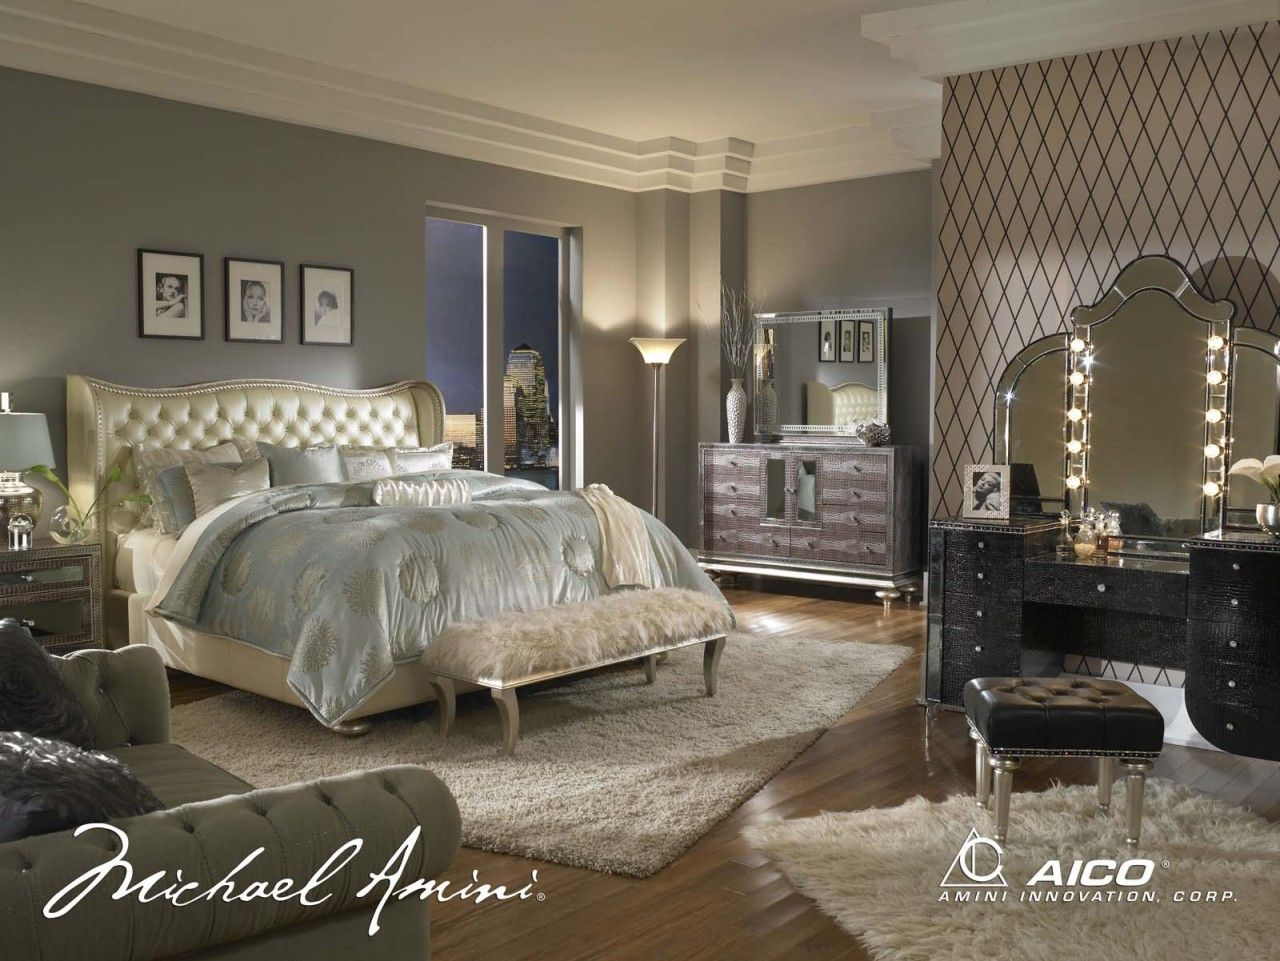 high end bedroom furniture brands. AICO Hollywood Swank 4pc Upholstered Platform Bedroom Set In Creamy Pearl - Collection Furniture Brands High End